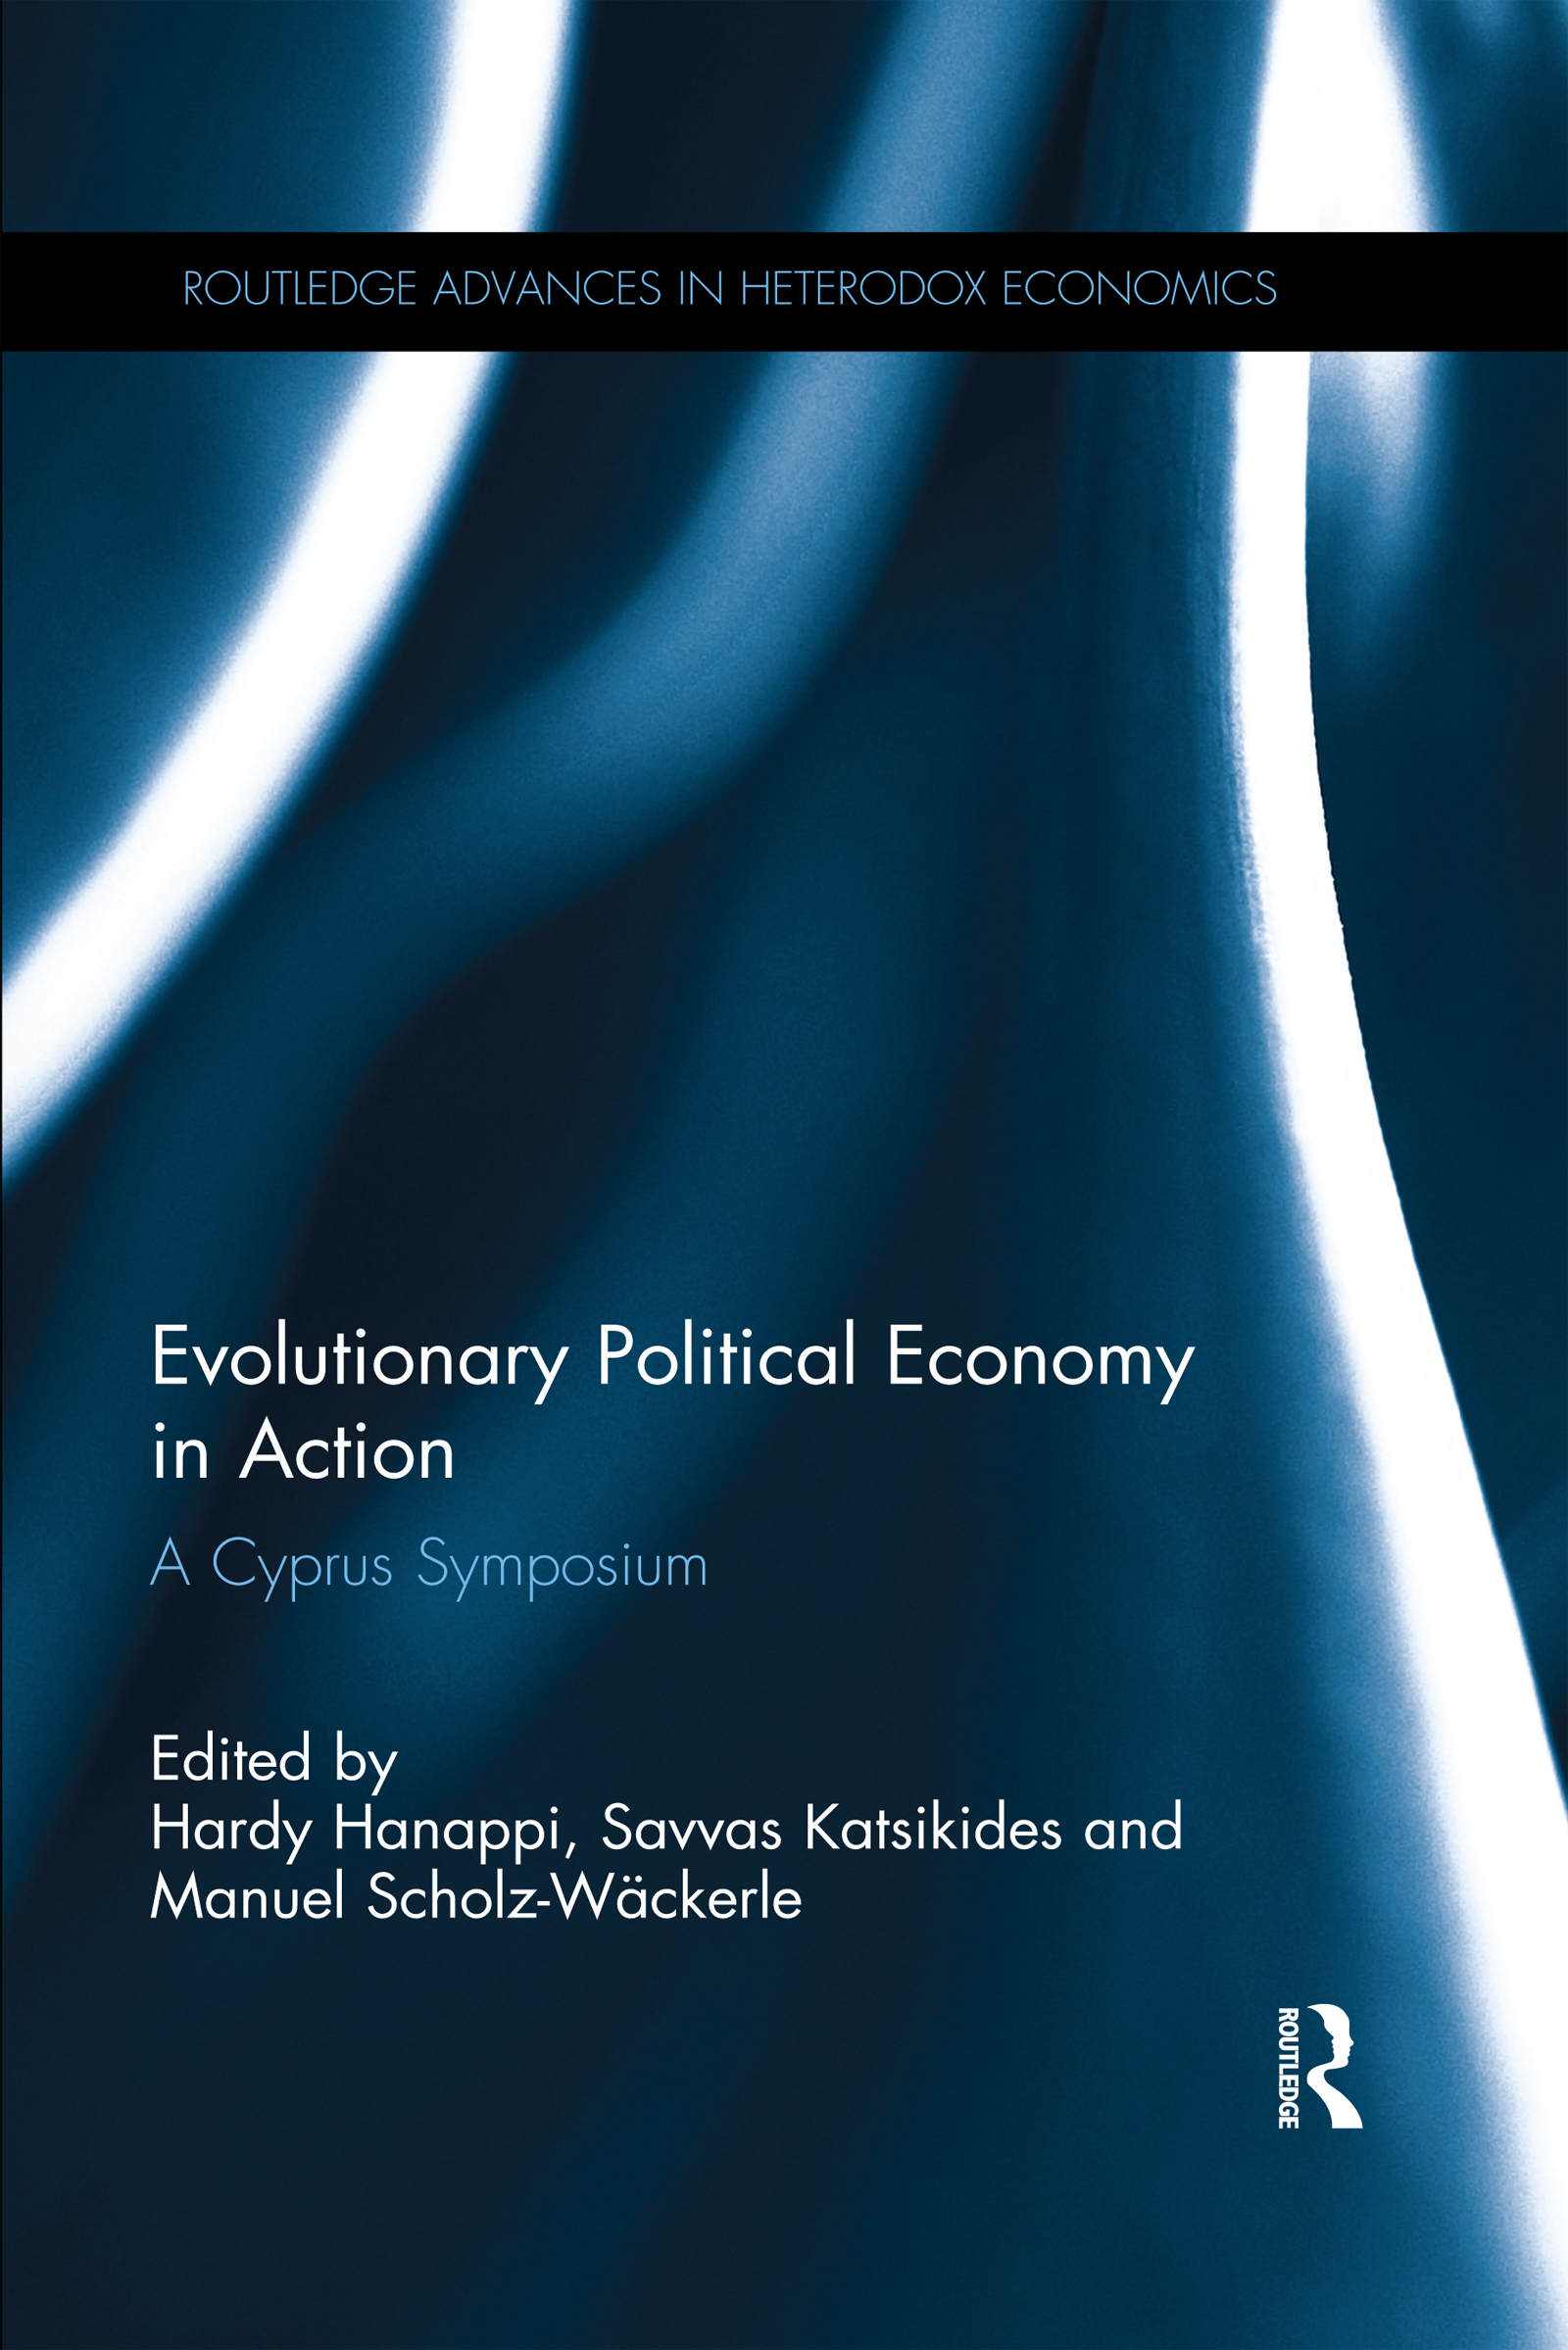 Evolutionary Political Economy in Action